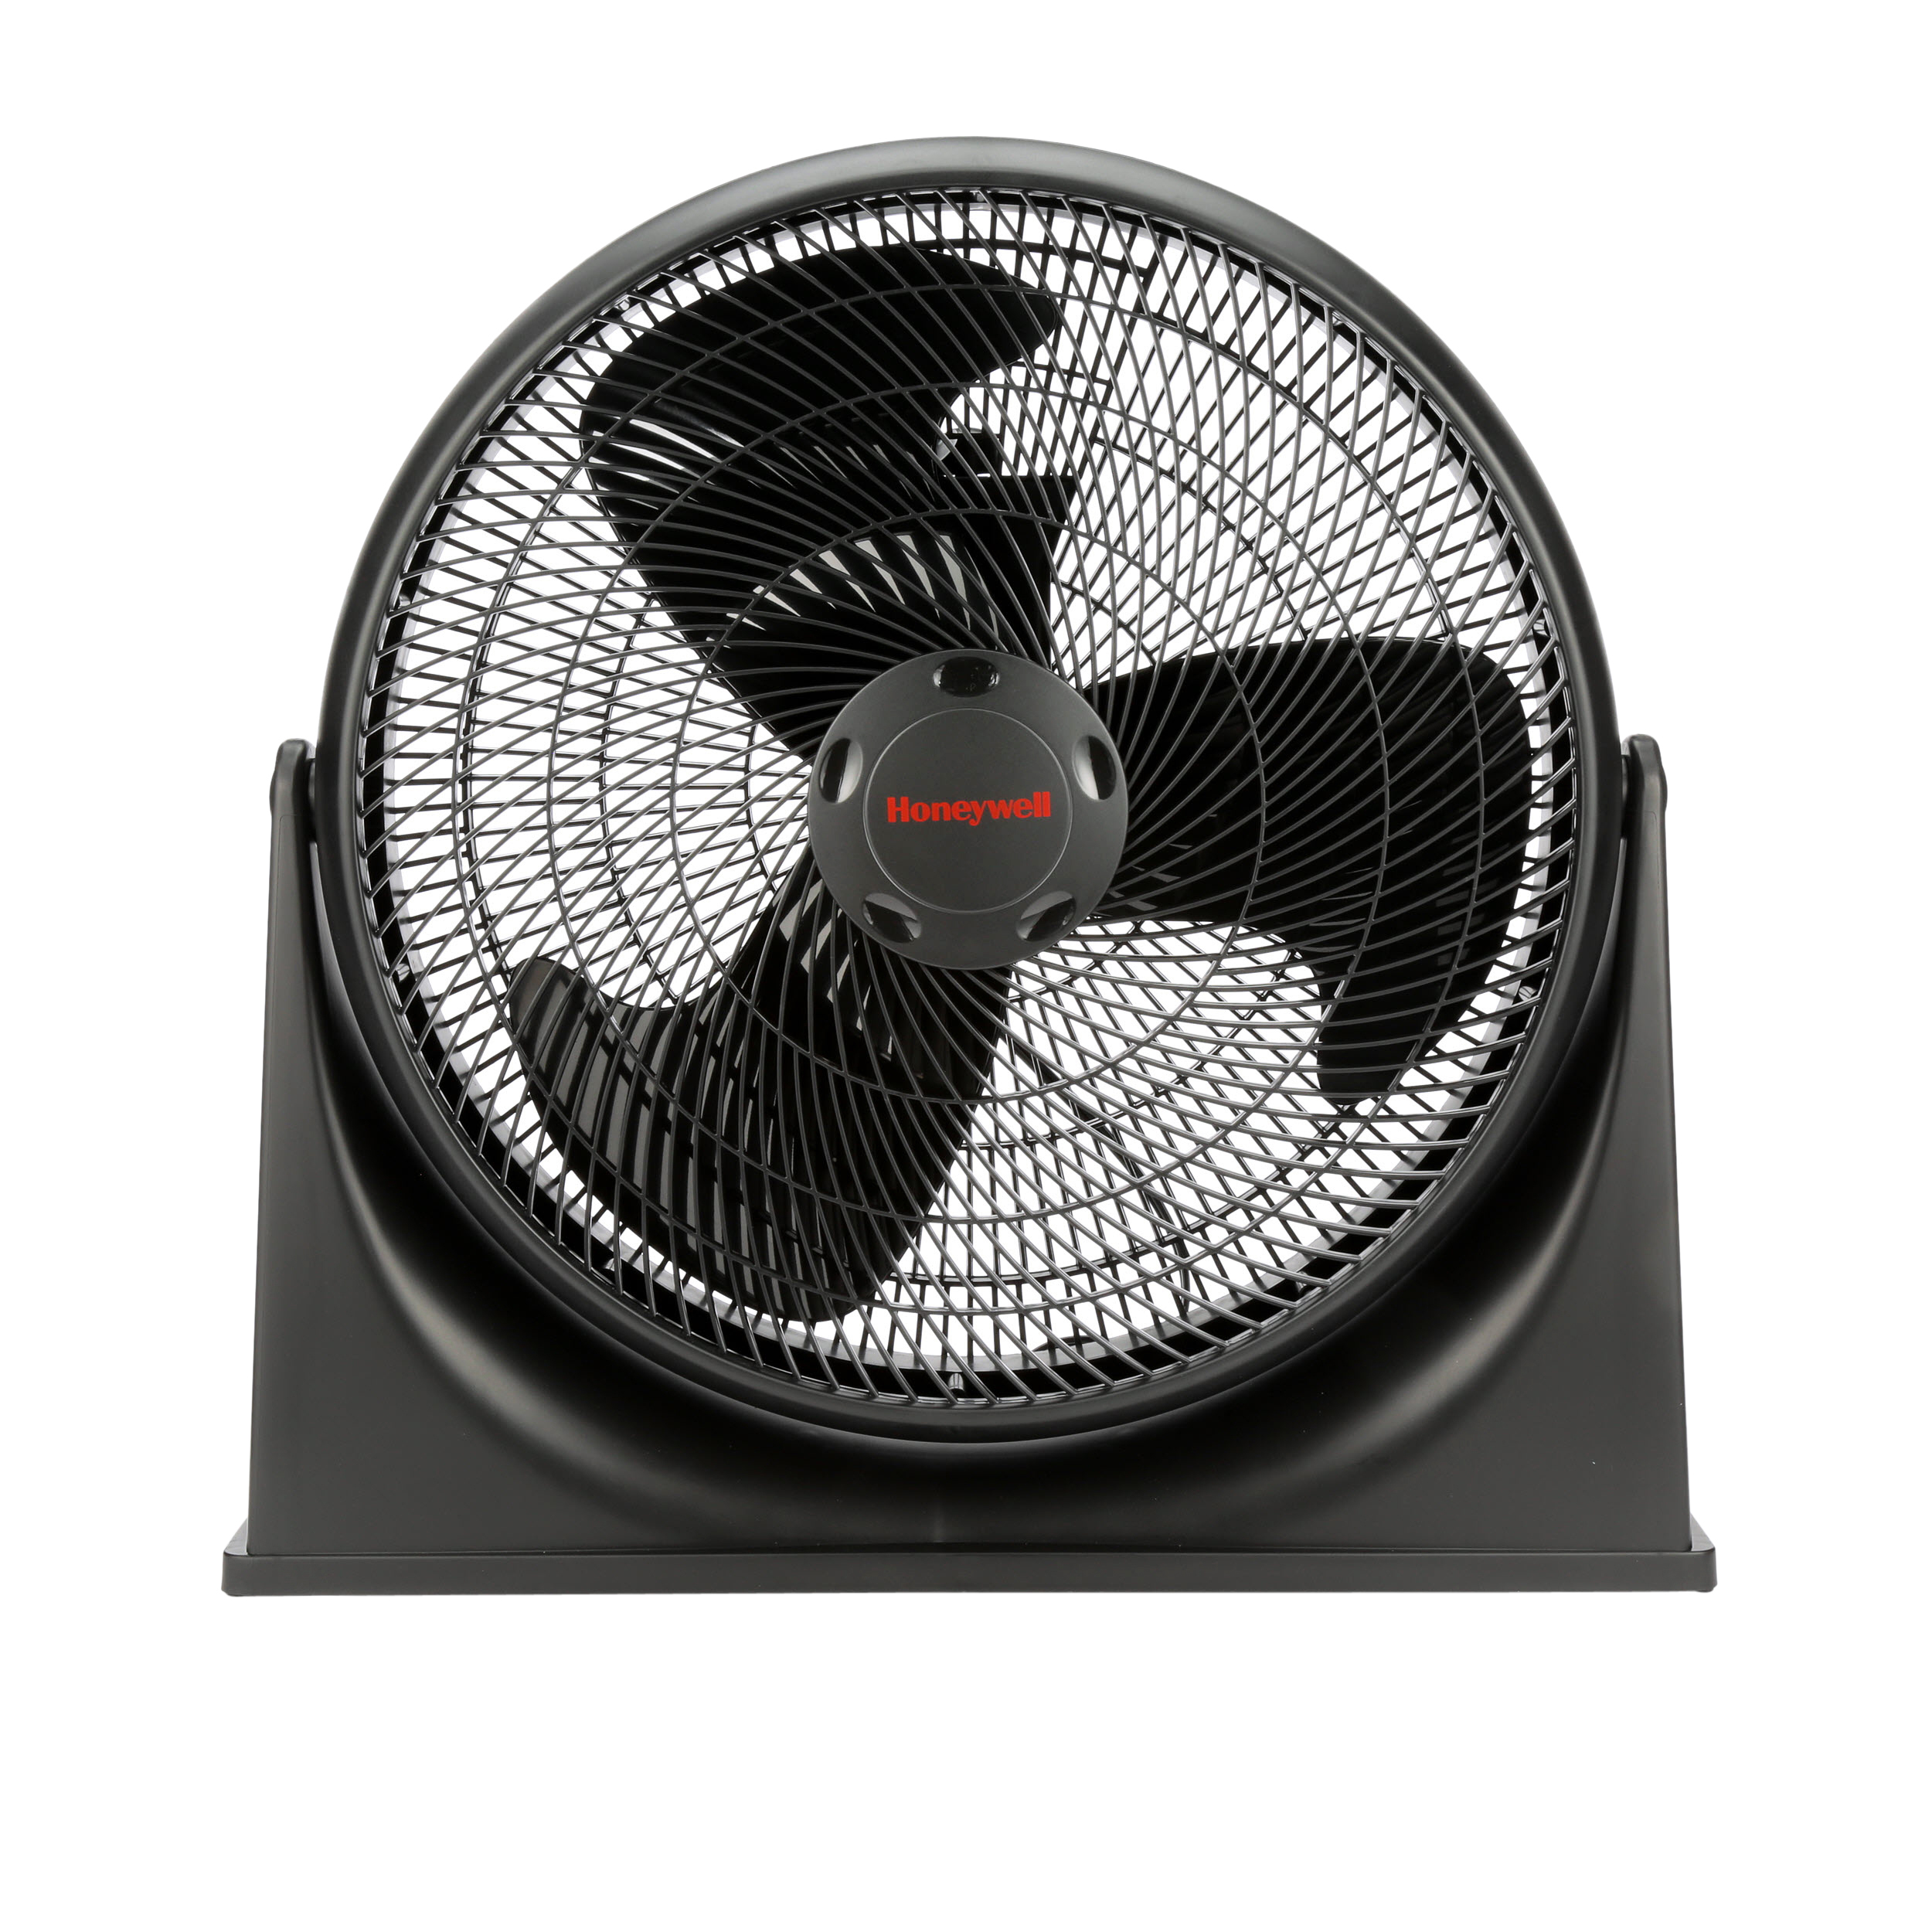 Honeywell TurboForce Power 3-Speed Air Circulator, Model #HF-910, Black